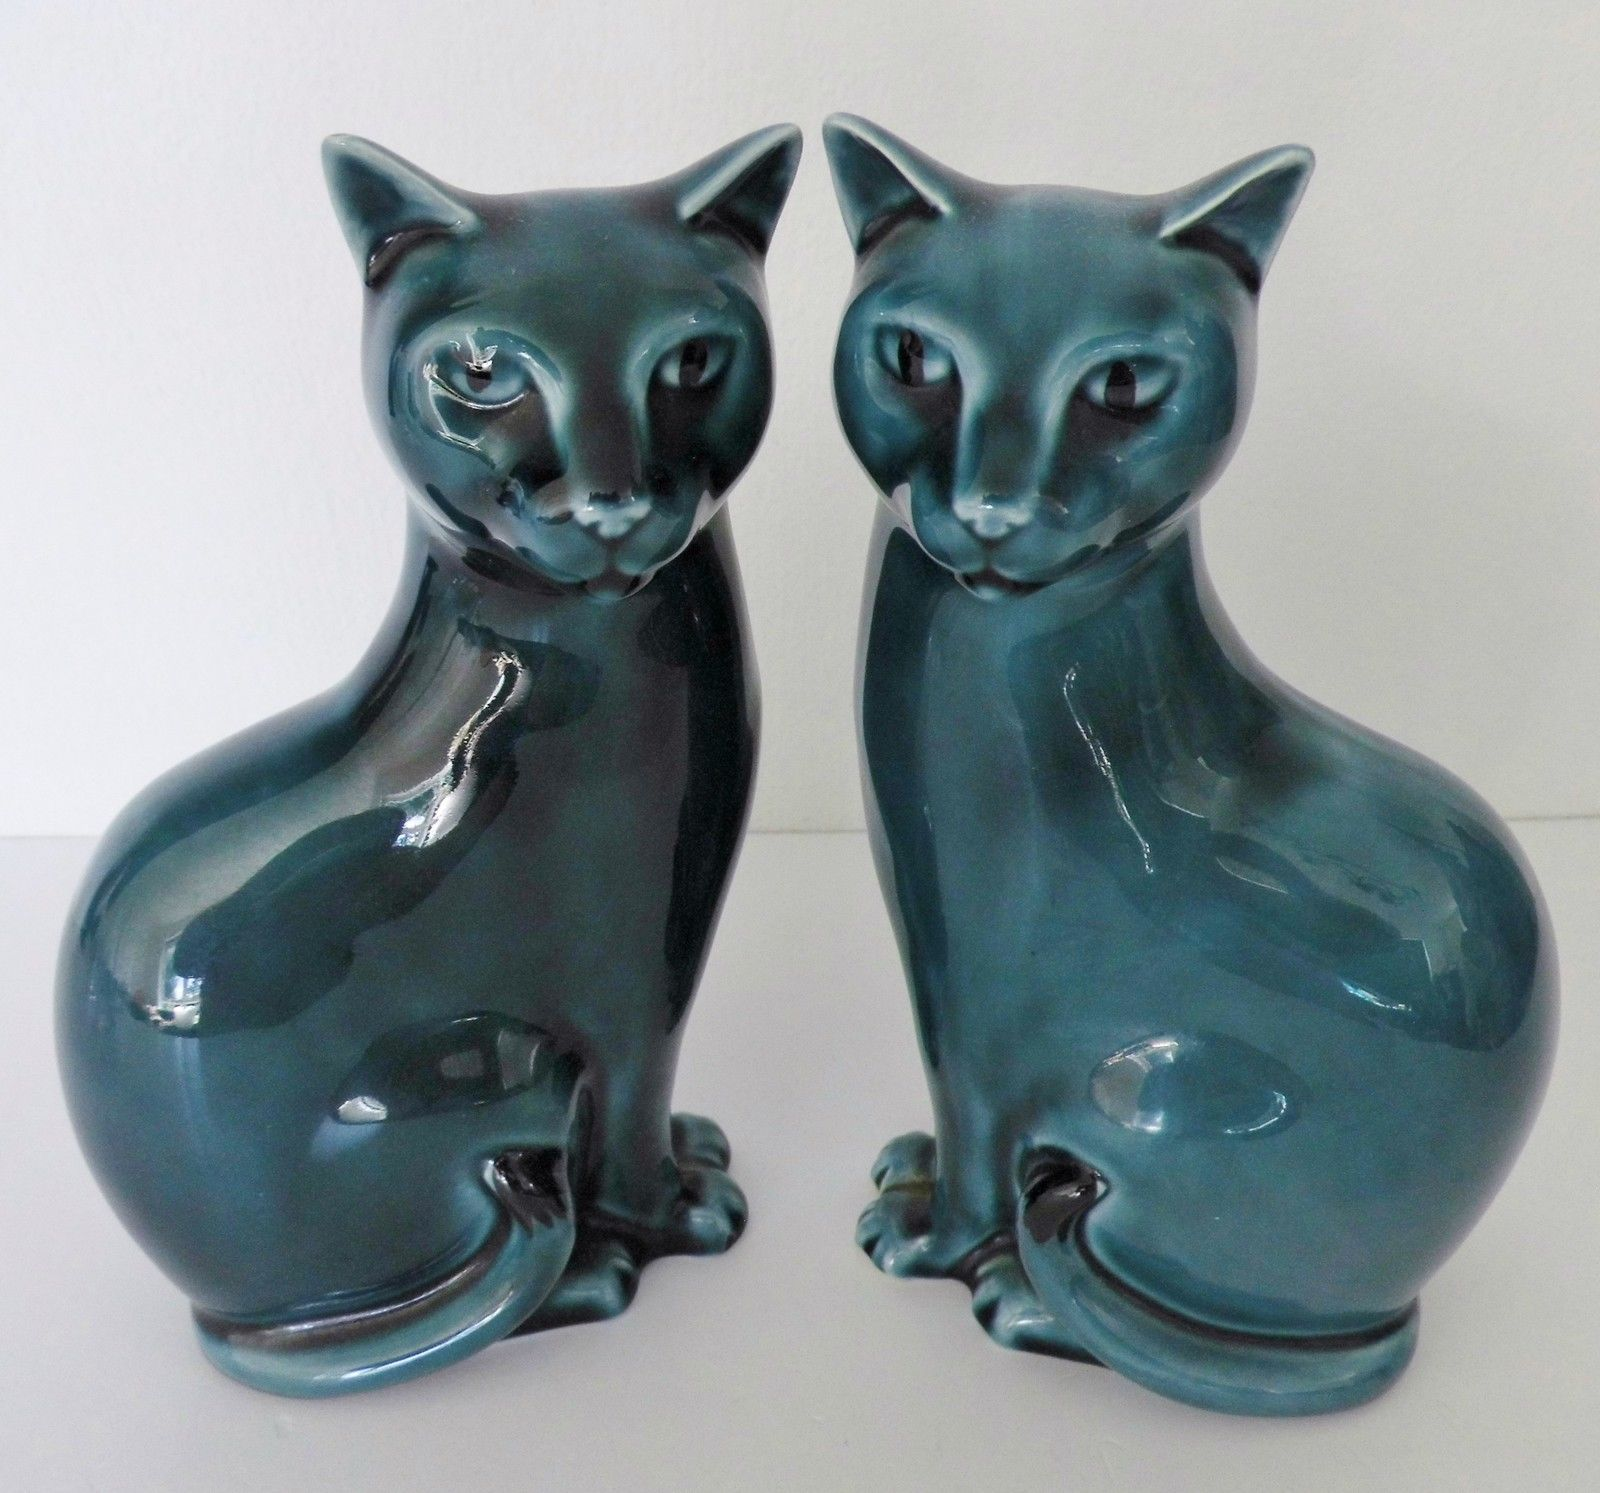 2 x POOLE POTTERY CATS LEFT AND RIGHT  About 16cm high